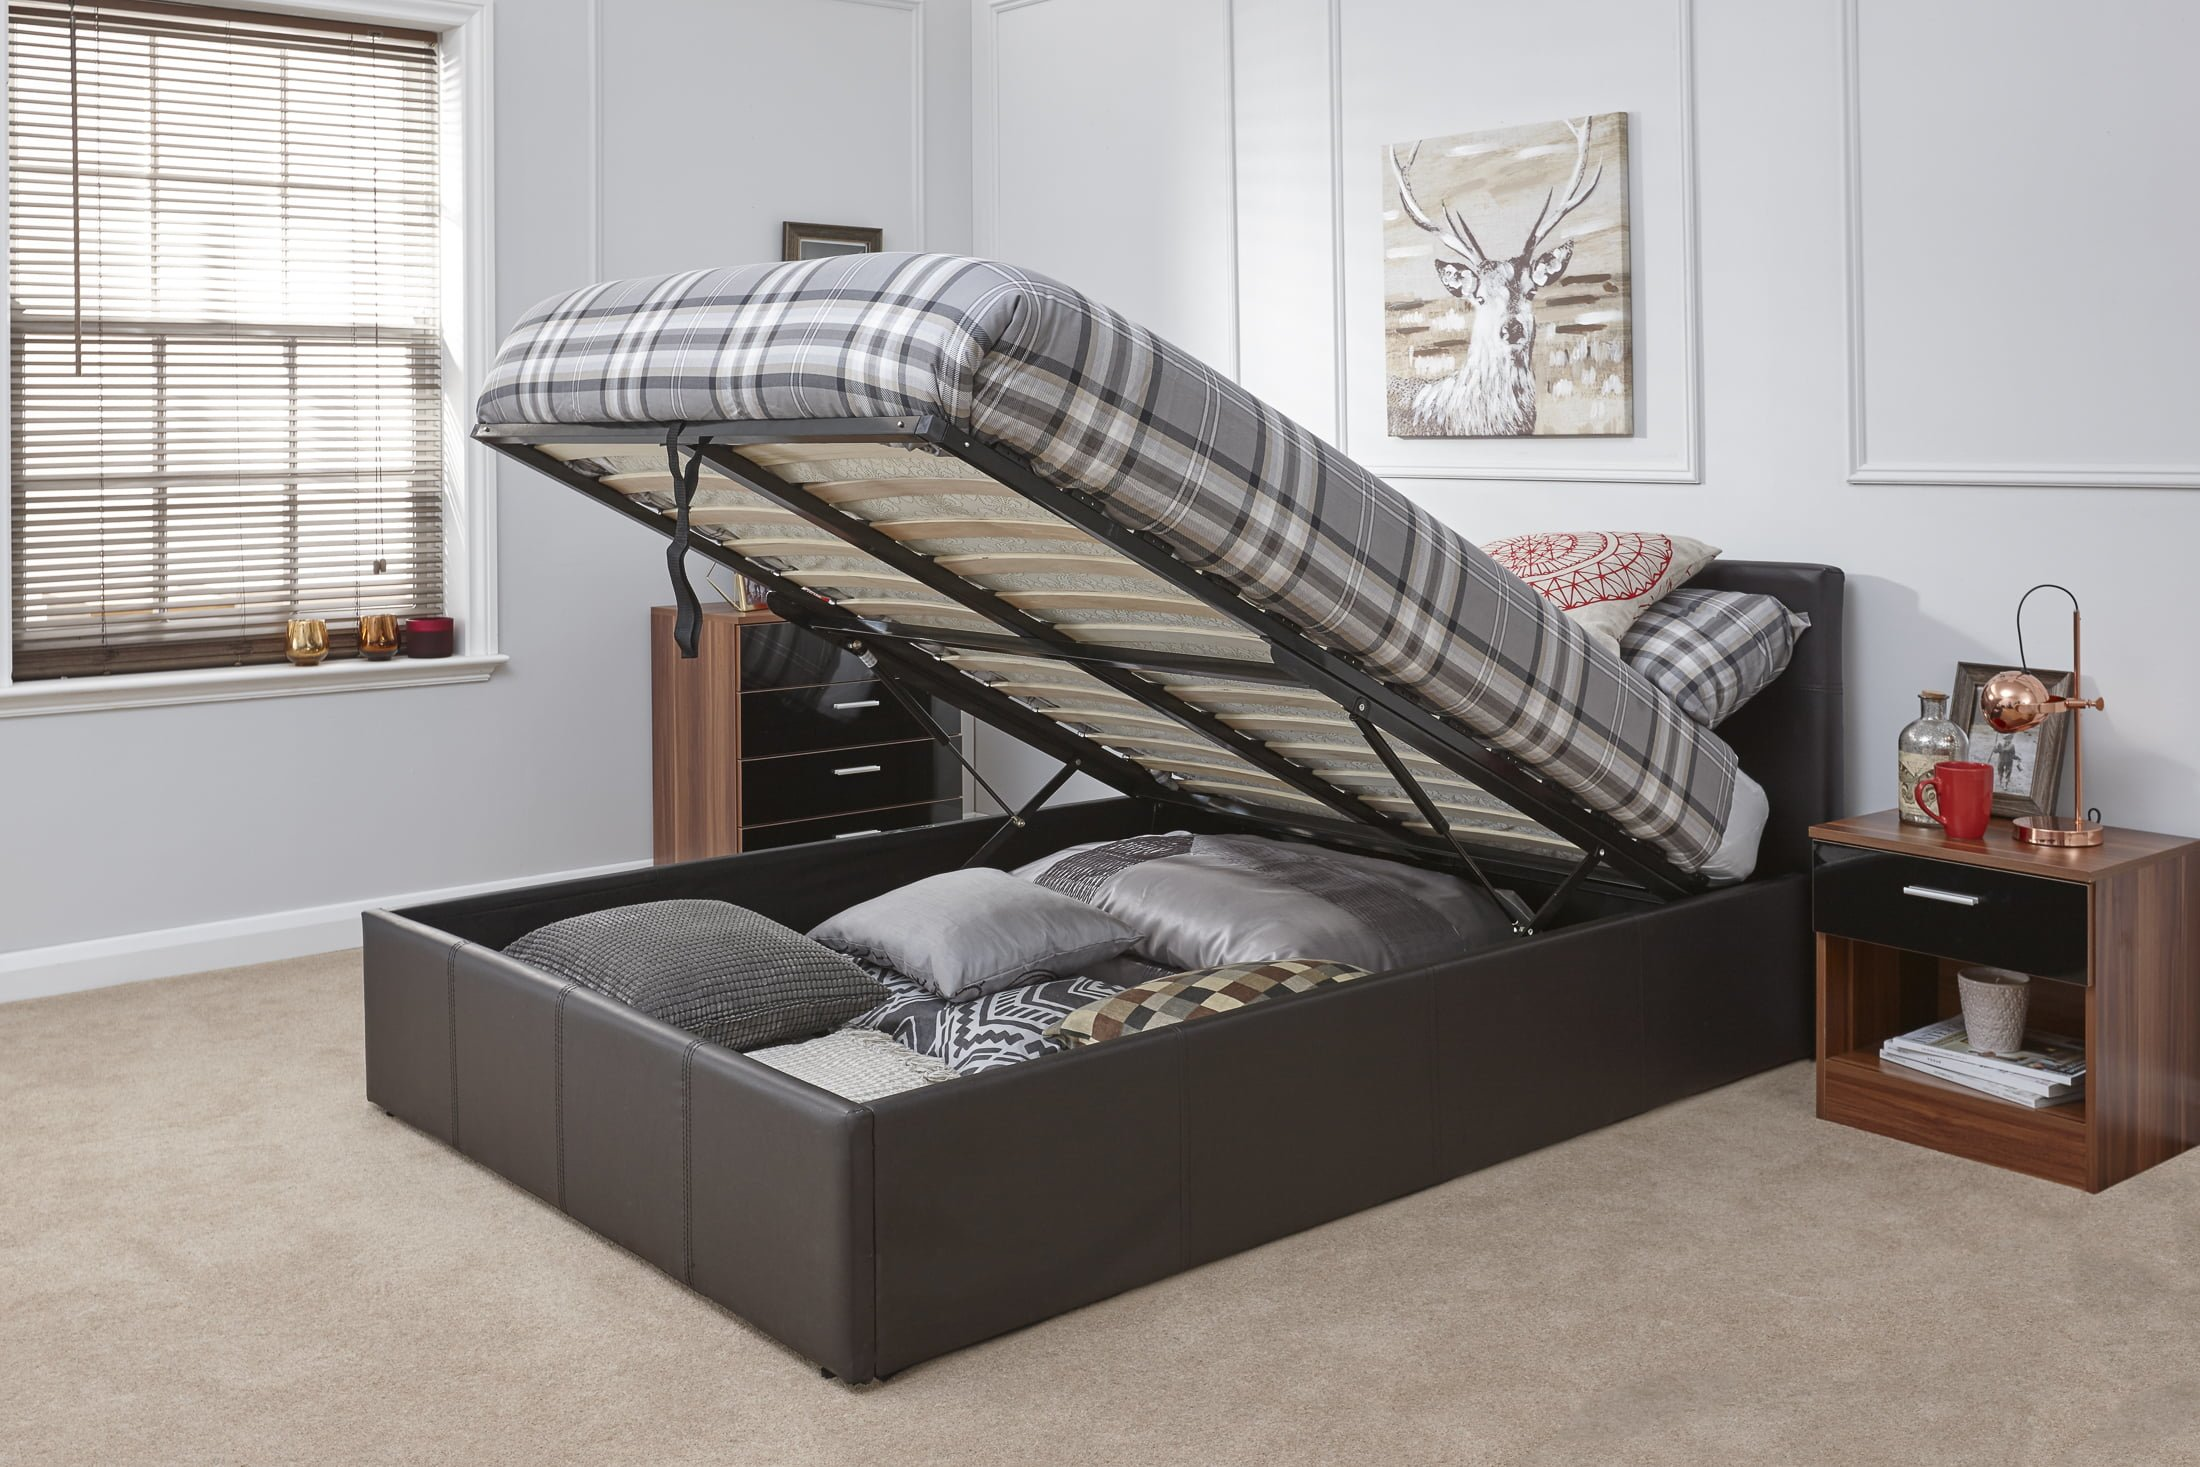 Arizona Brown Leather Ottoman Bed Frame - Dublin Beds